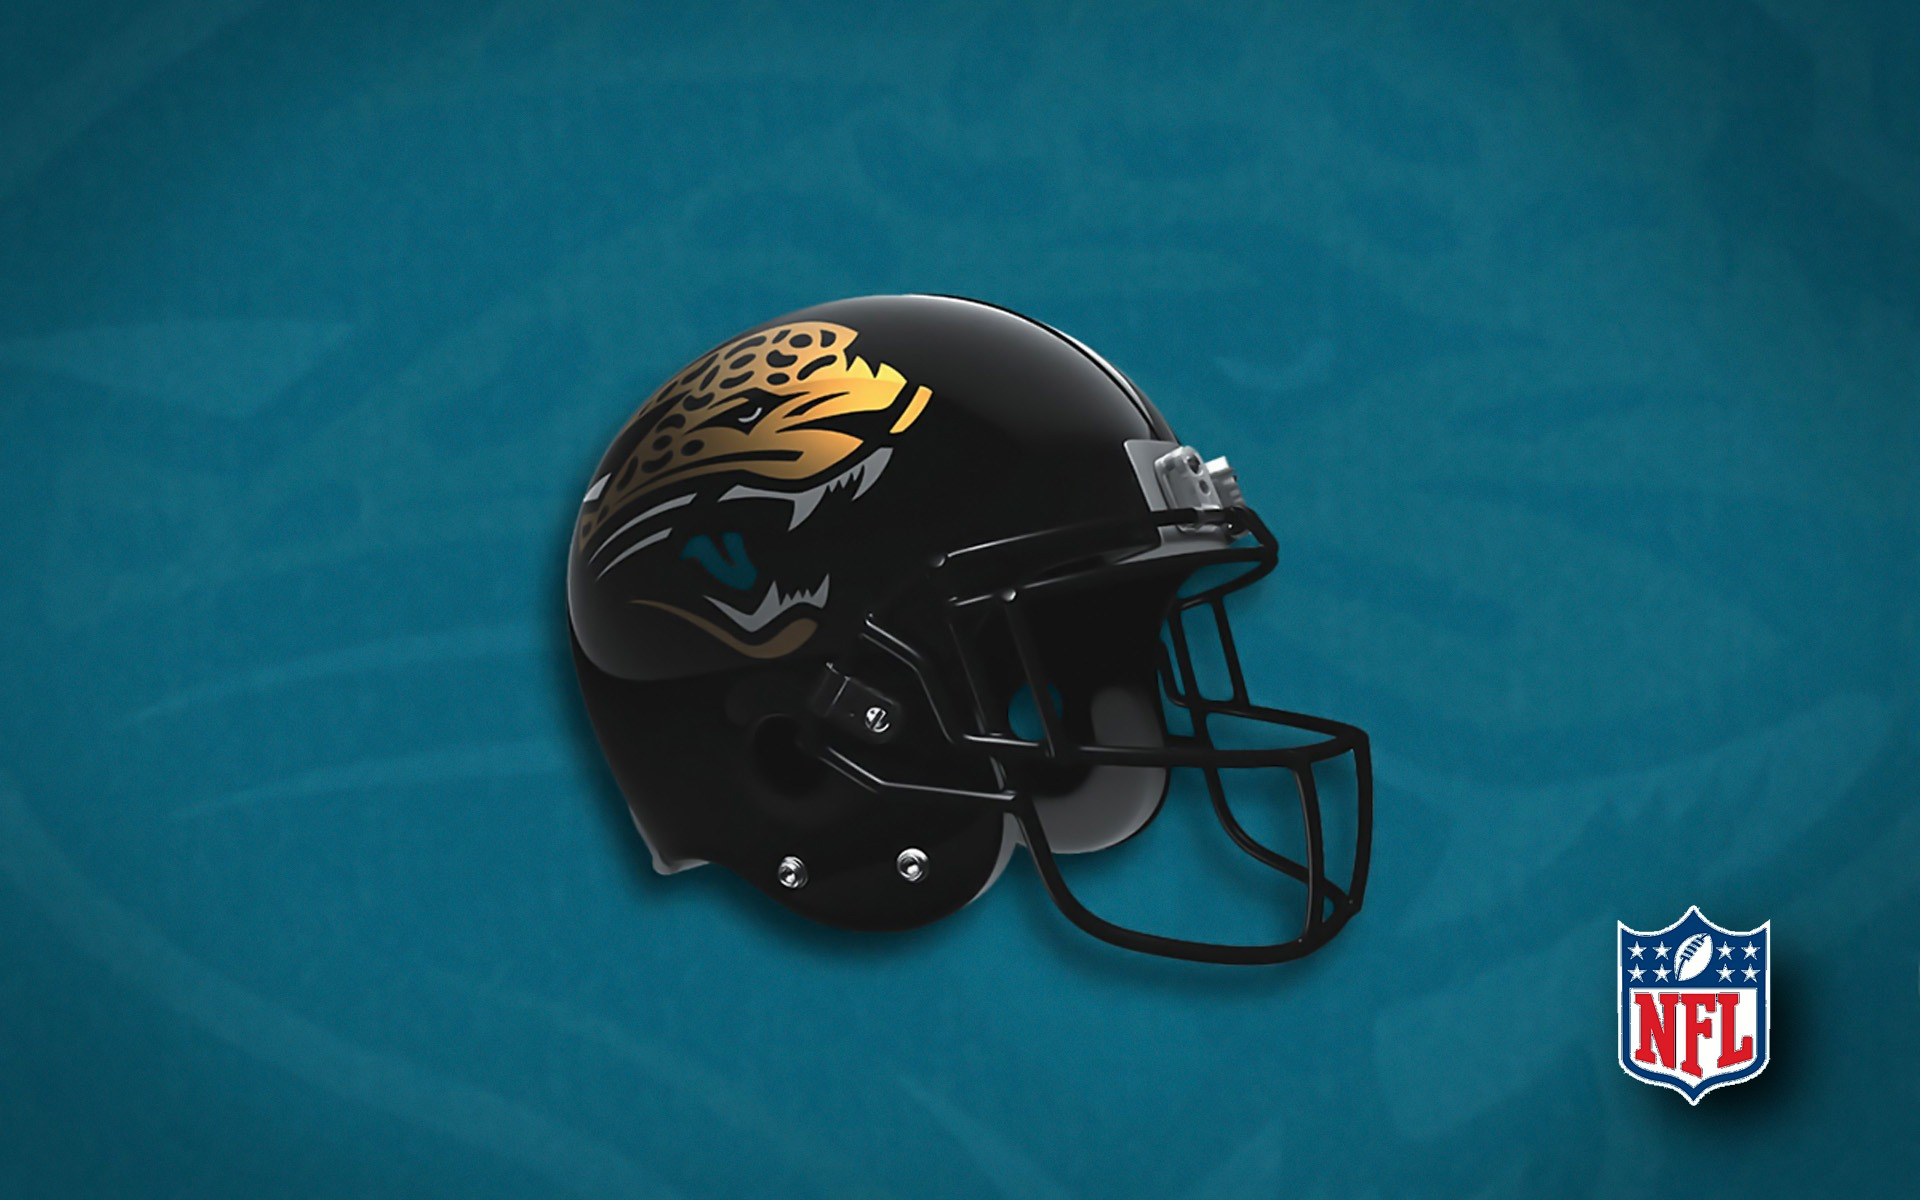 jacksonville jaguars new logo wallpapers - photo #29